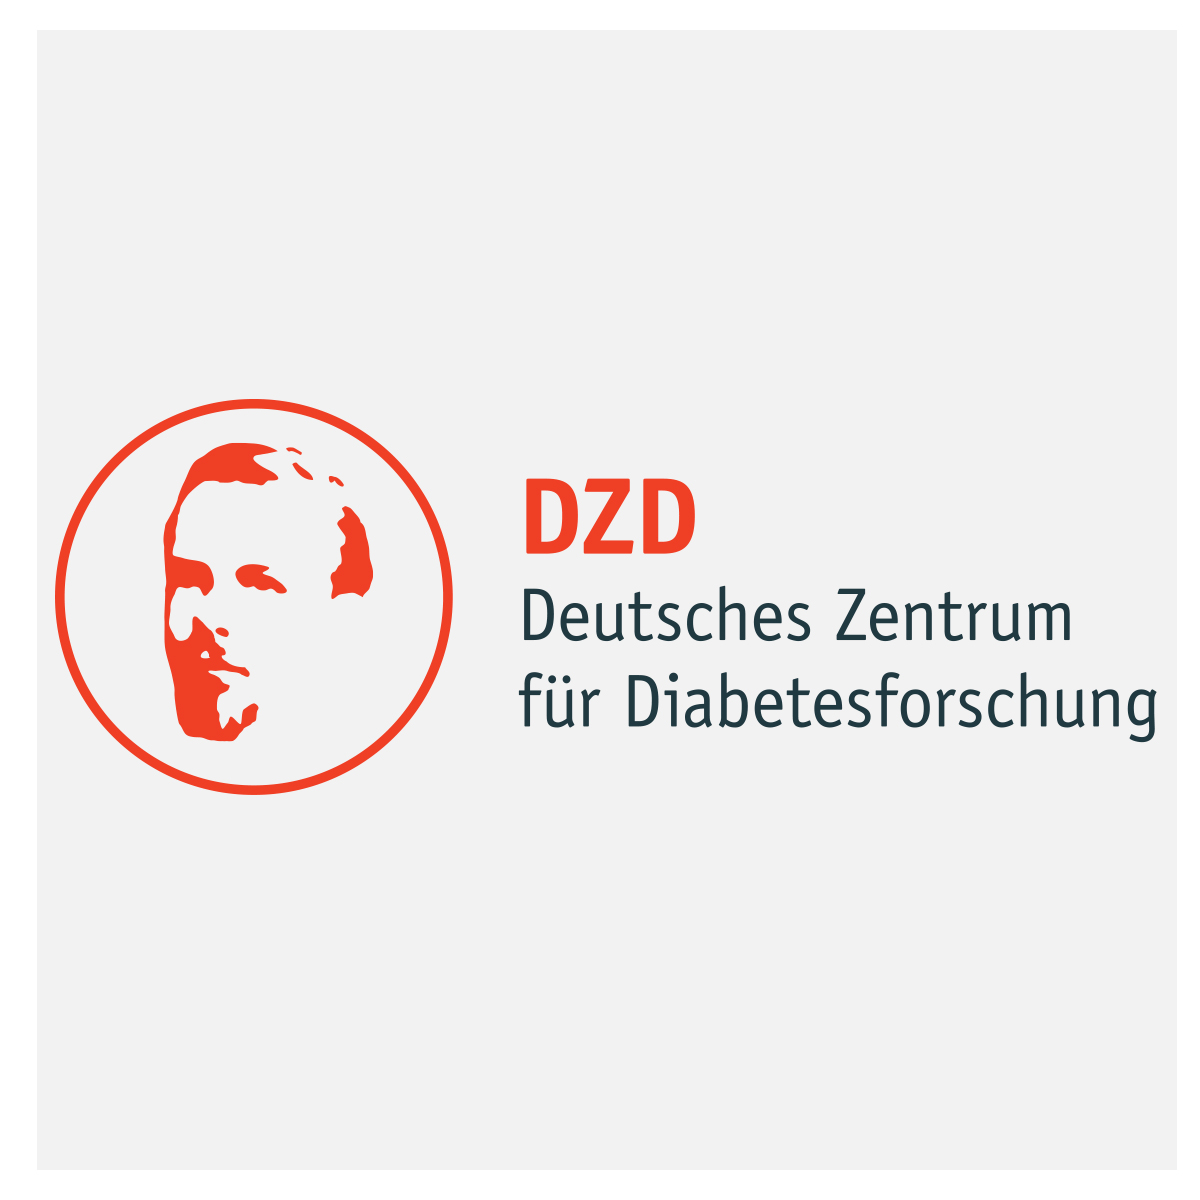 Logo of the German Center for Diabetes Research